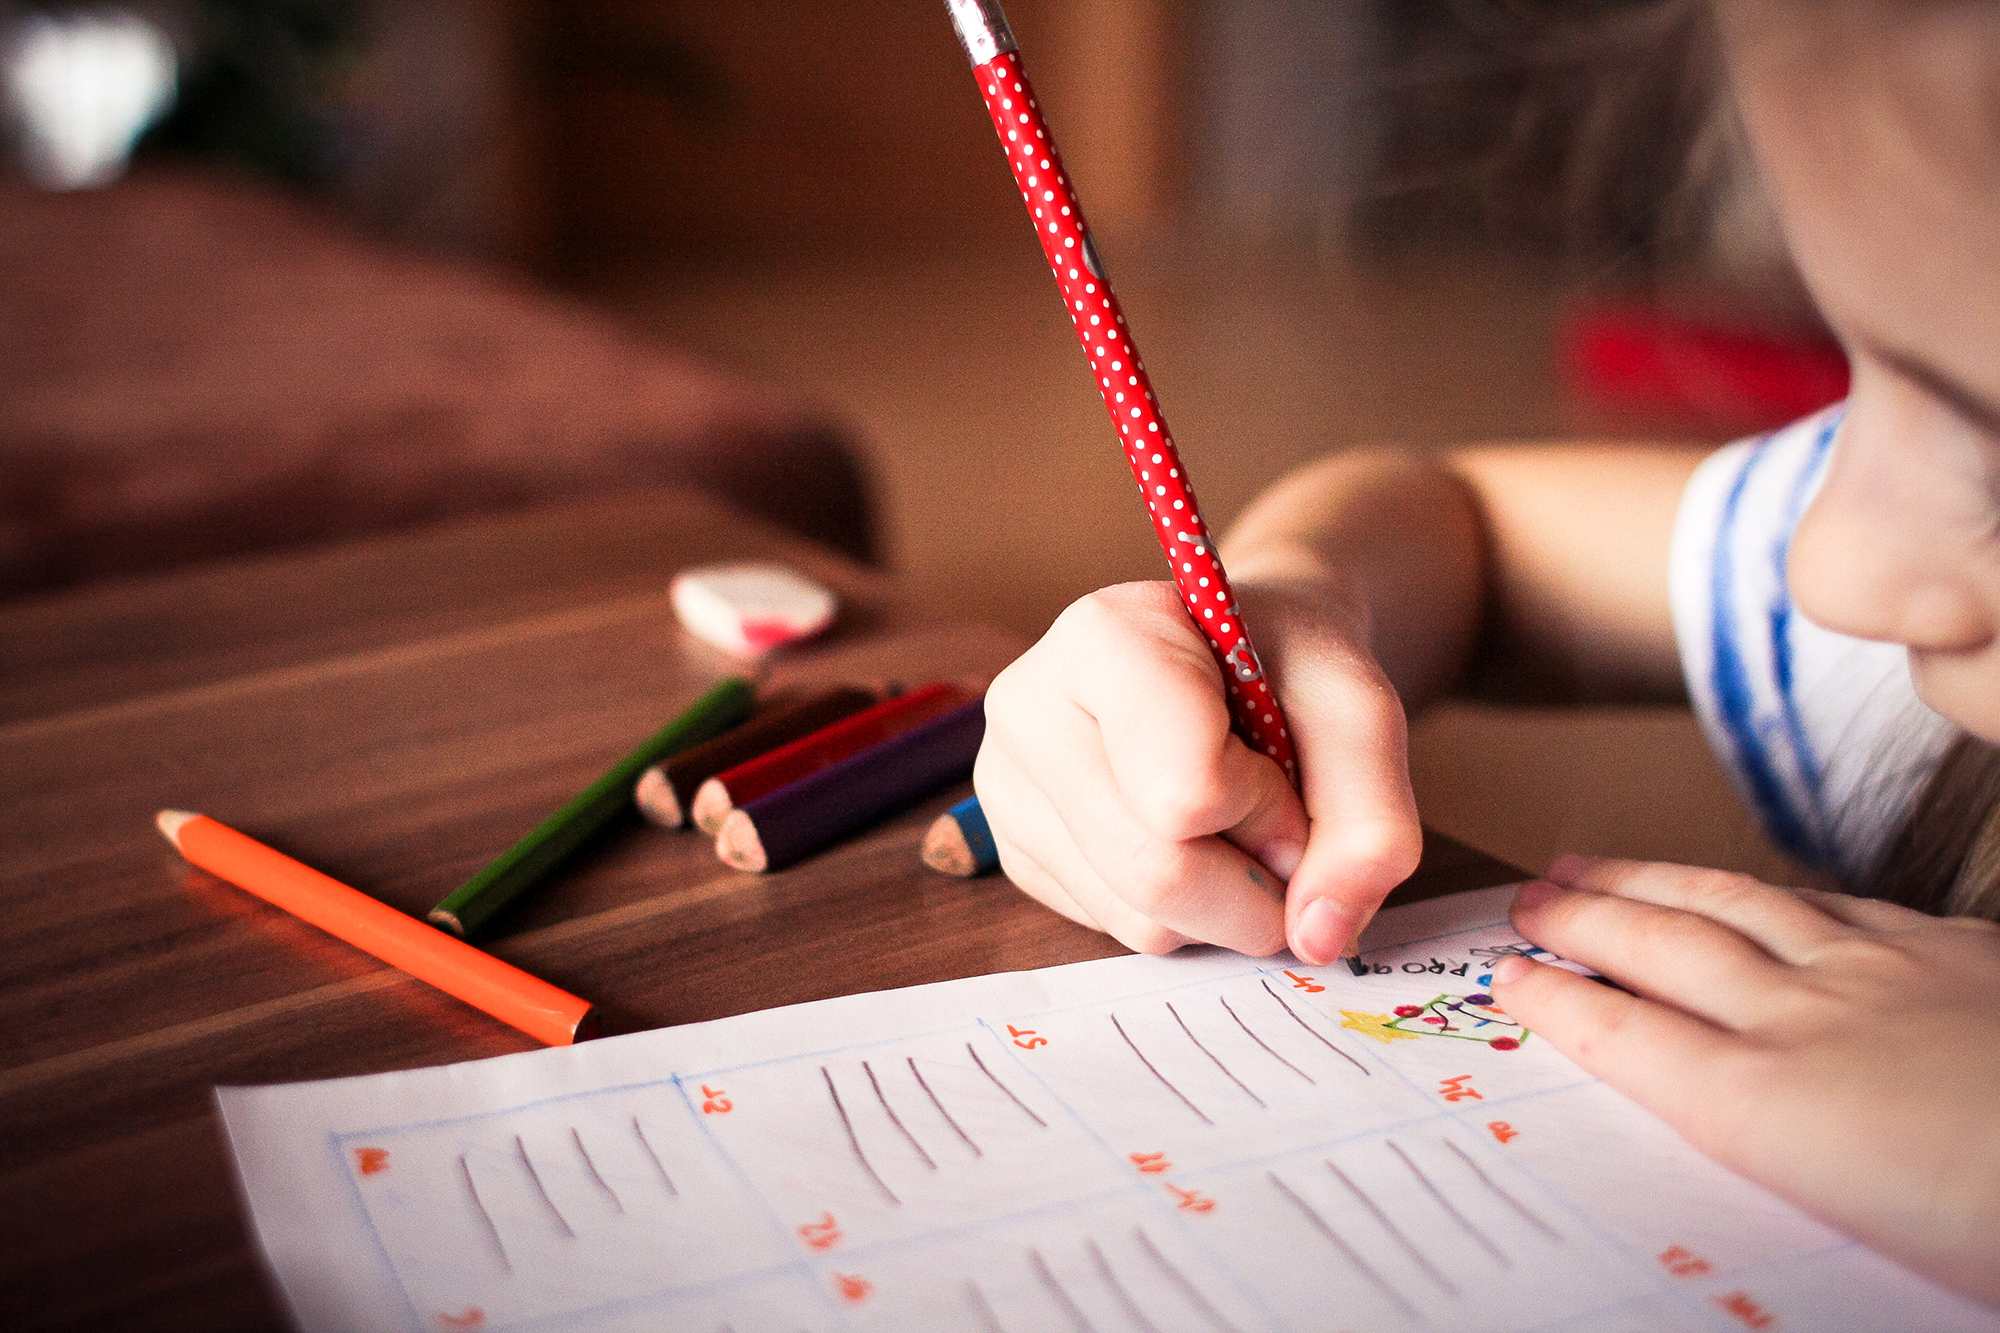 Child Working on Homework in the New School Year